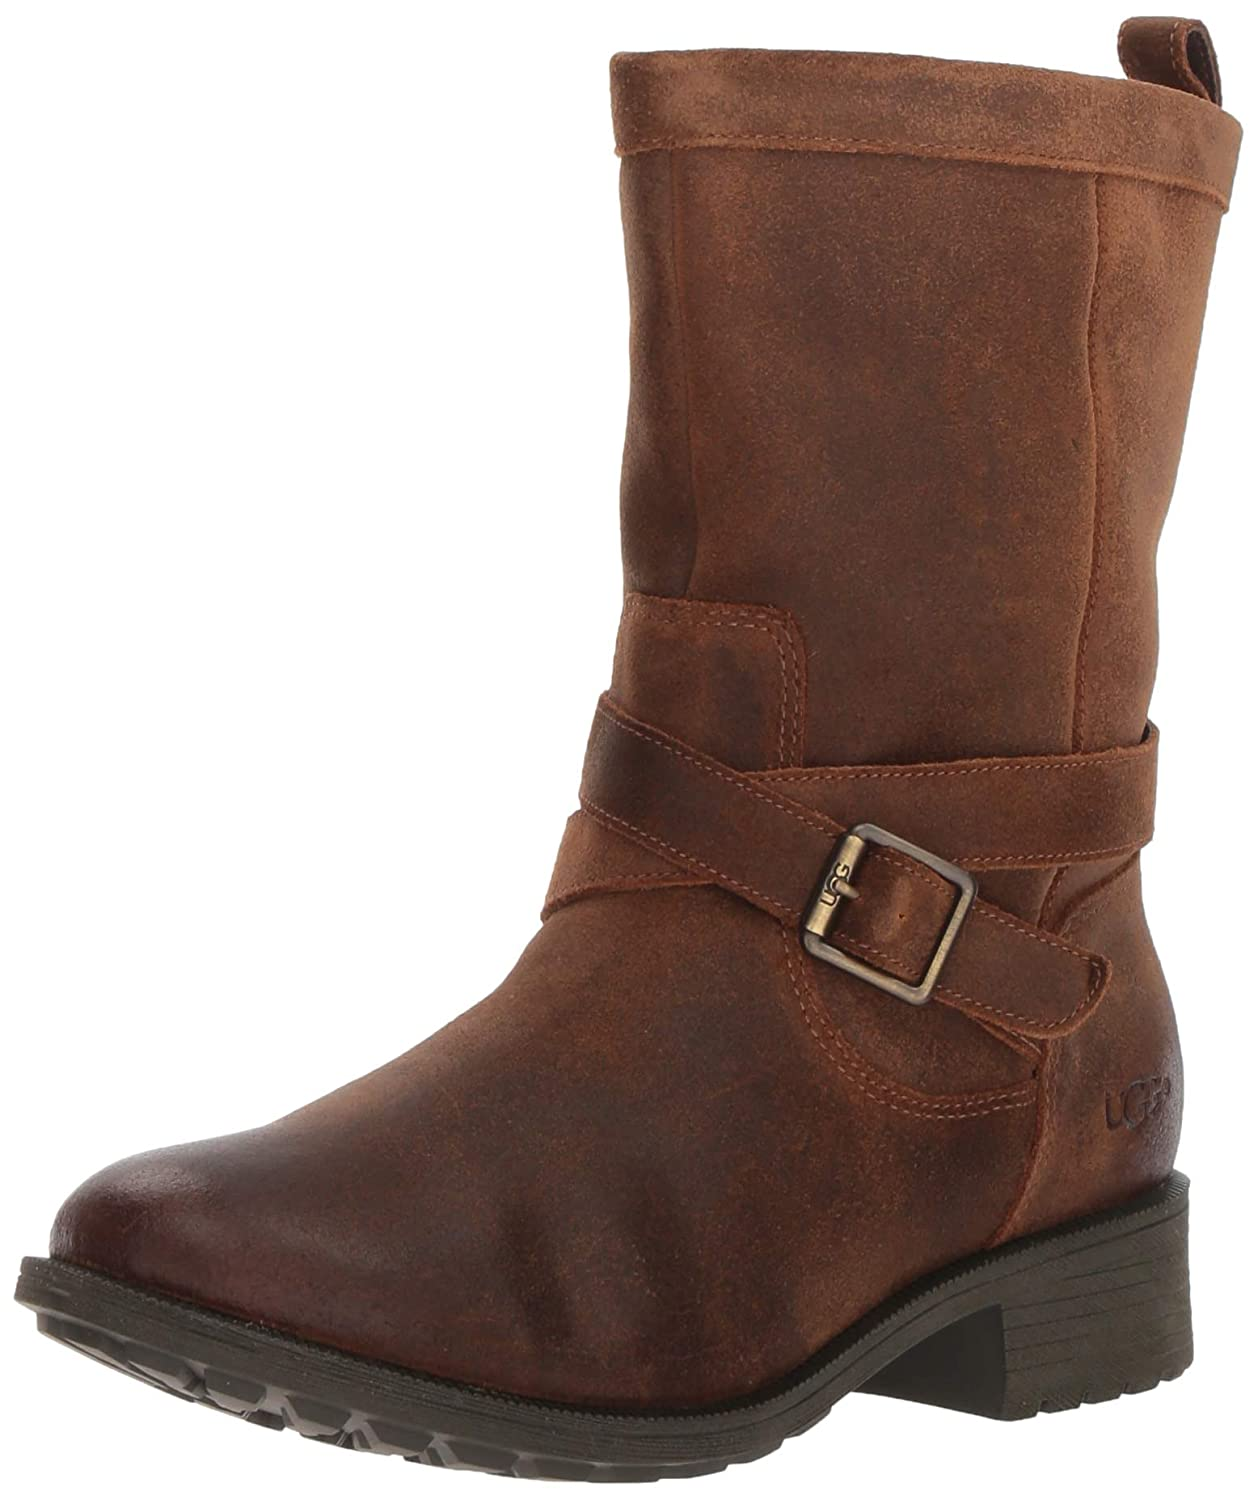 1b50172f538 UGG Women's W Glendale Fashion Boot